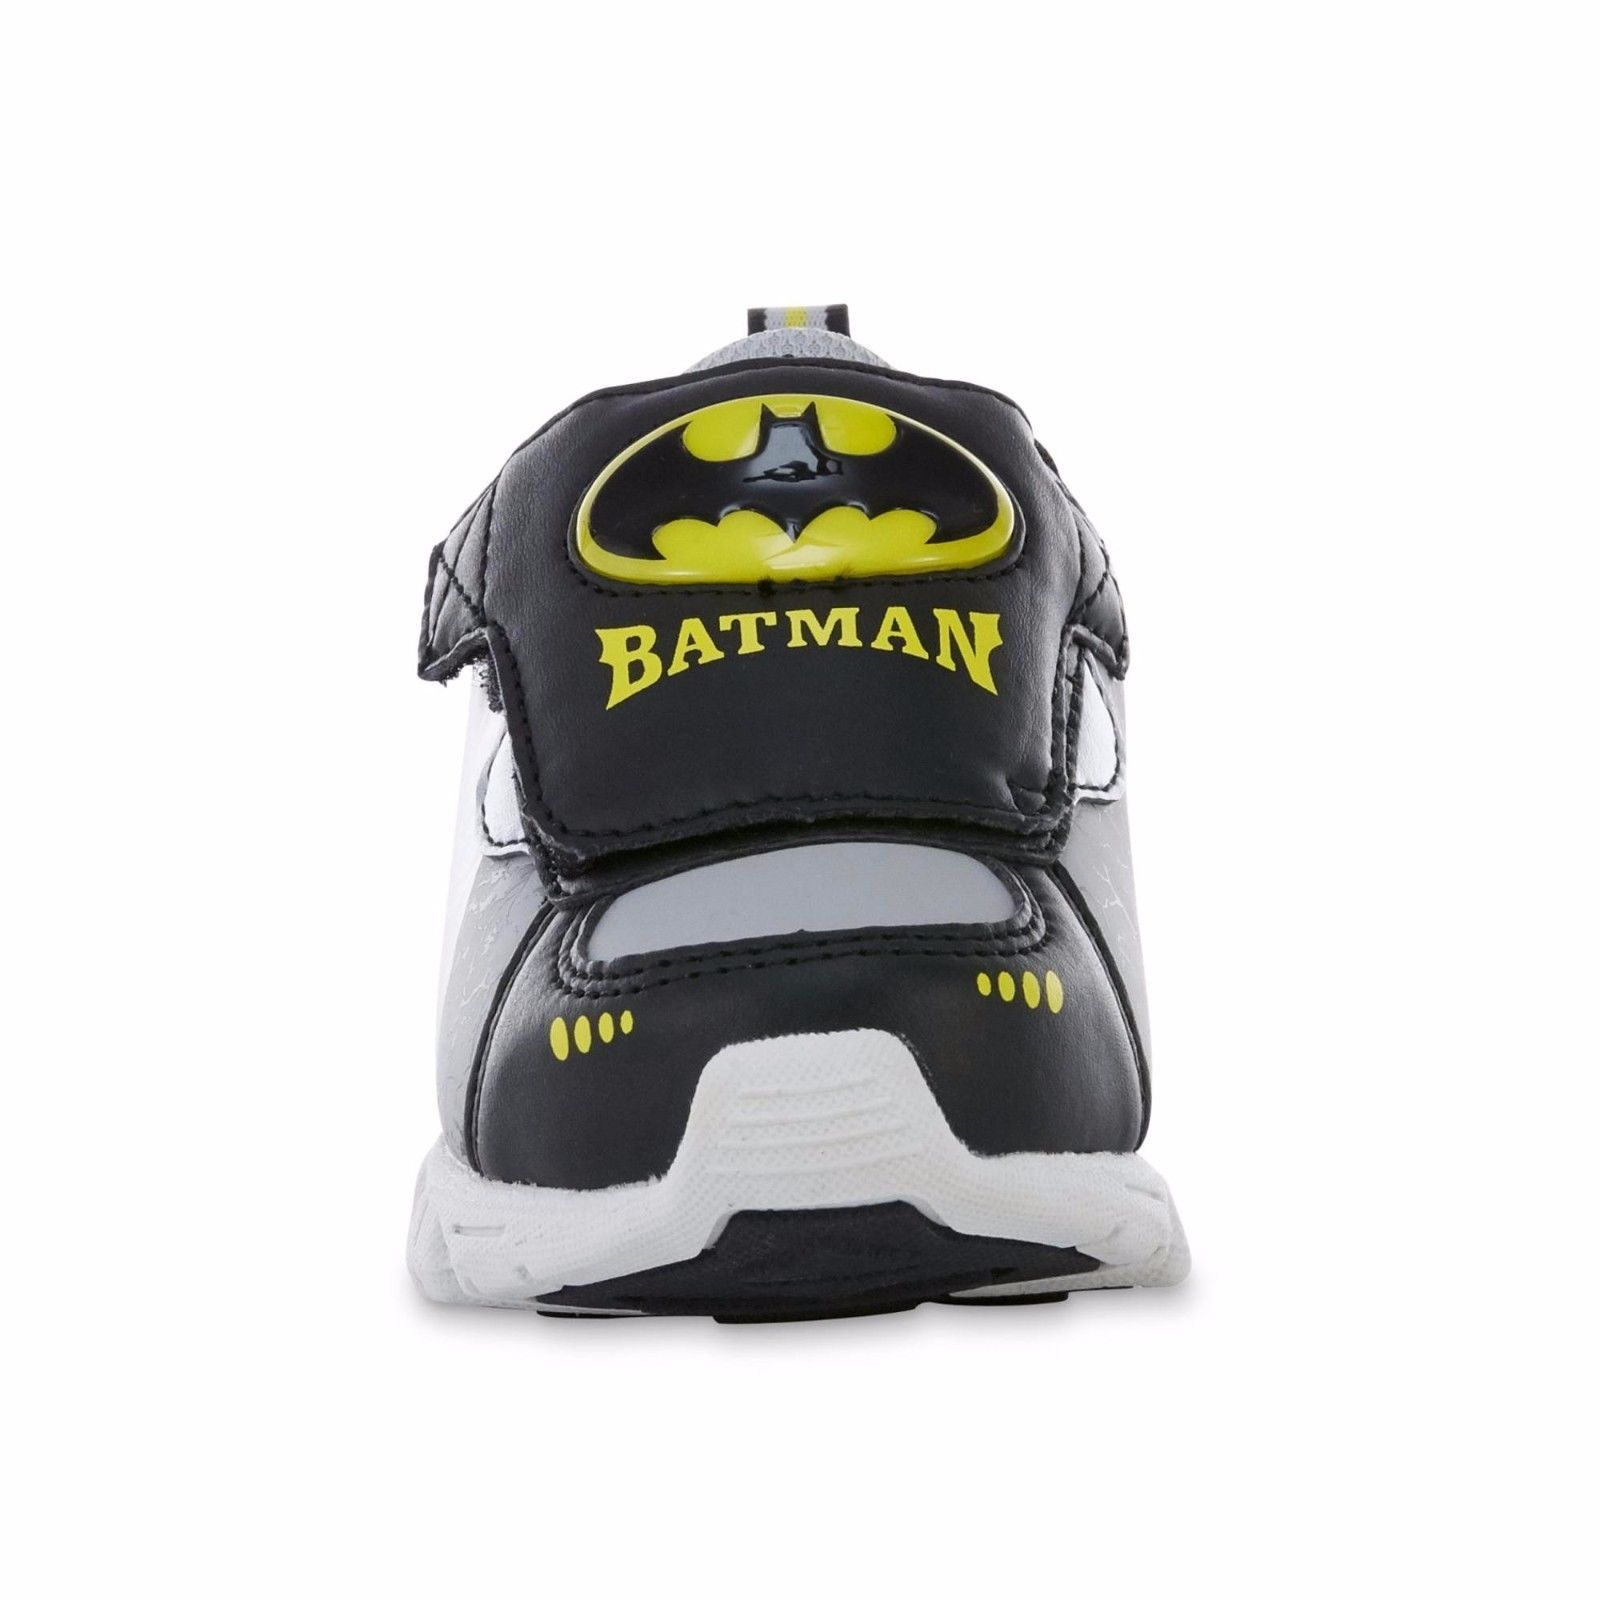 NEW DC Boys Toddler Child Batman Light Up Sneakers Size 7 8 9 10 11 or 12